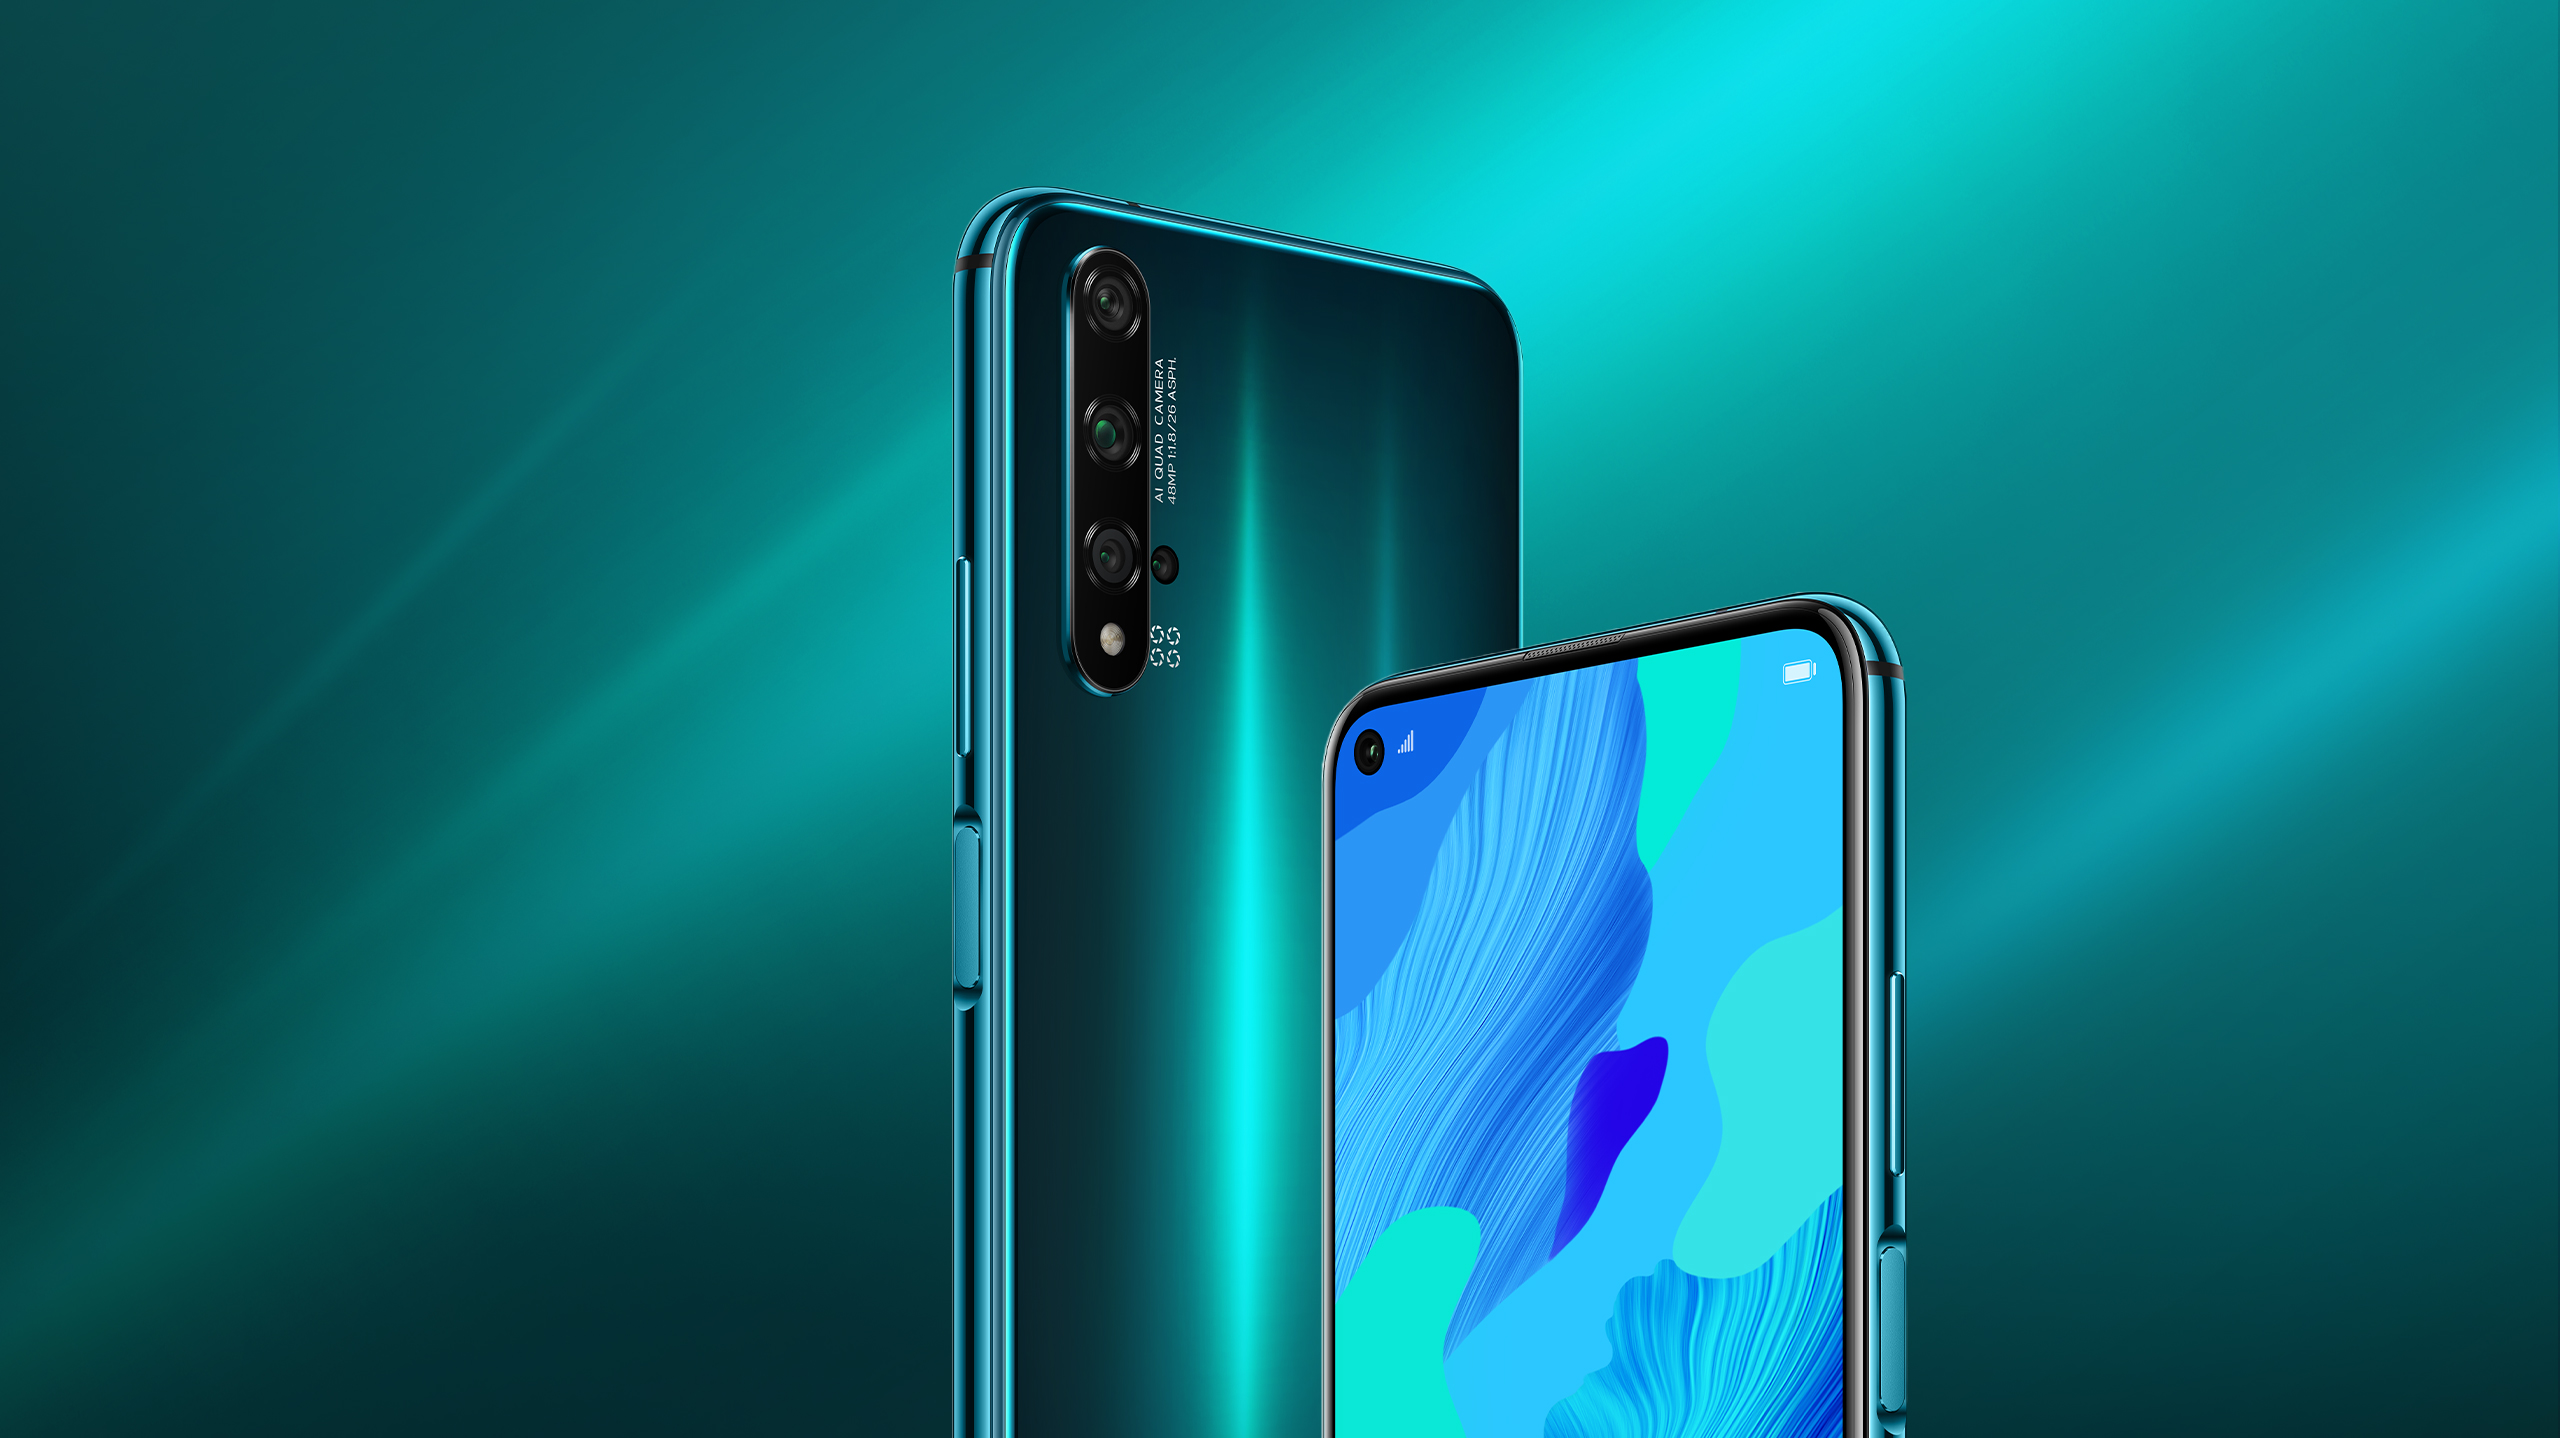 HUAWEI nova 5T color green